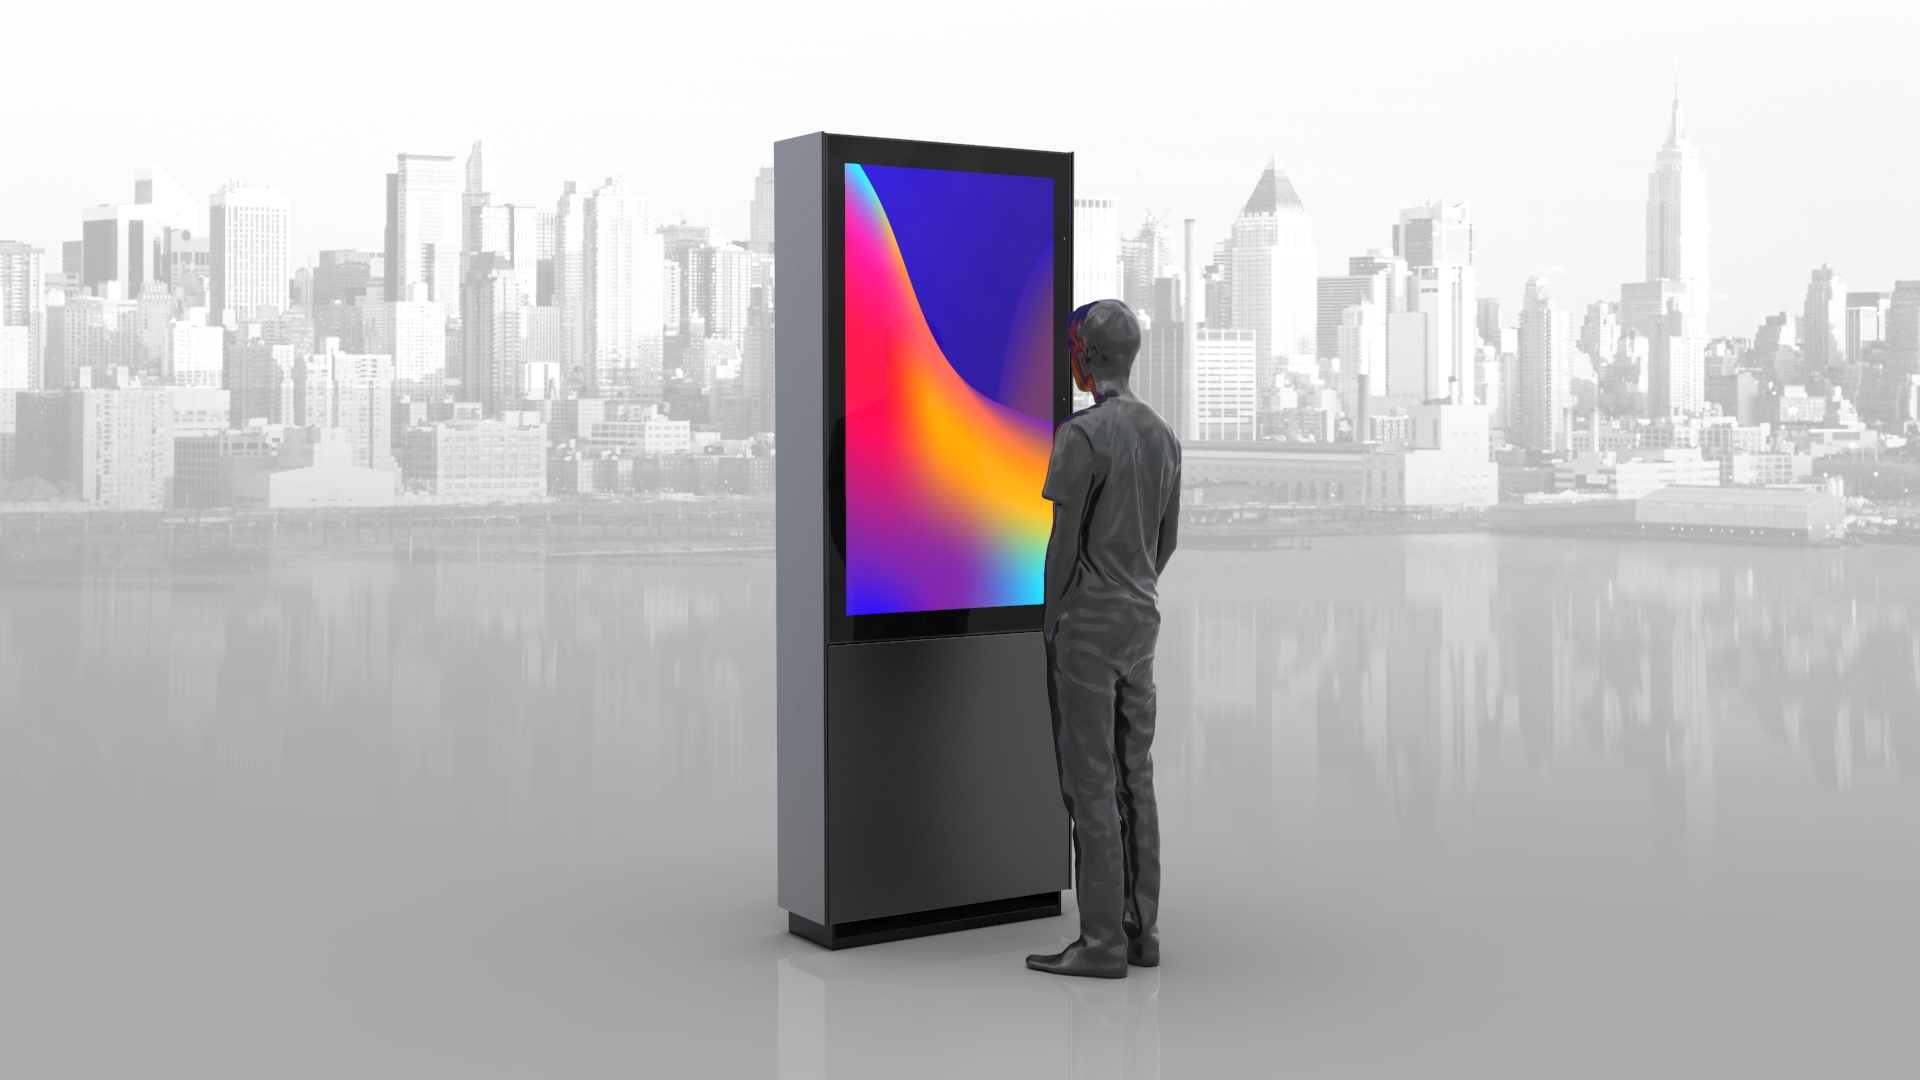 Man standing and looking at digital screen with a city scape behind it